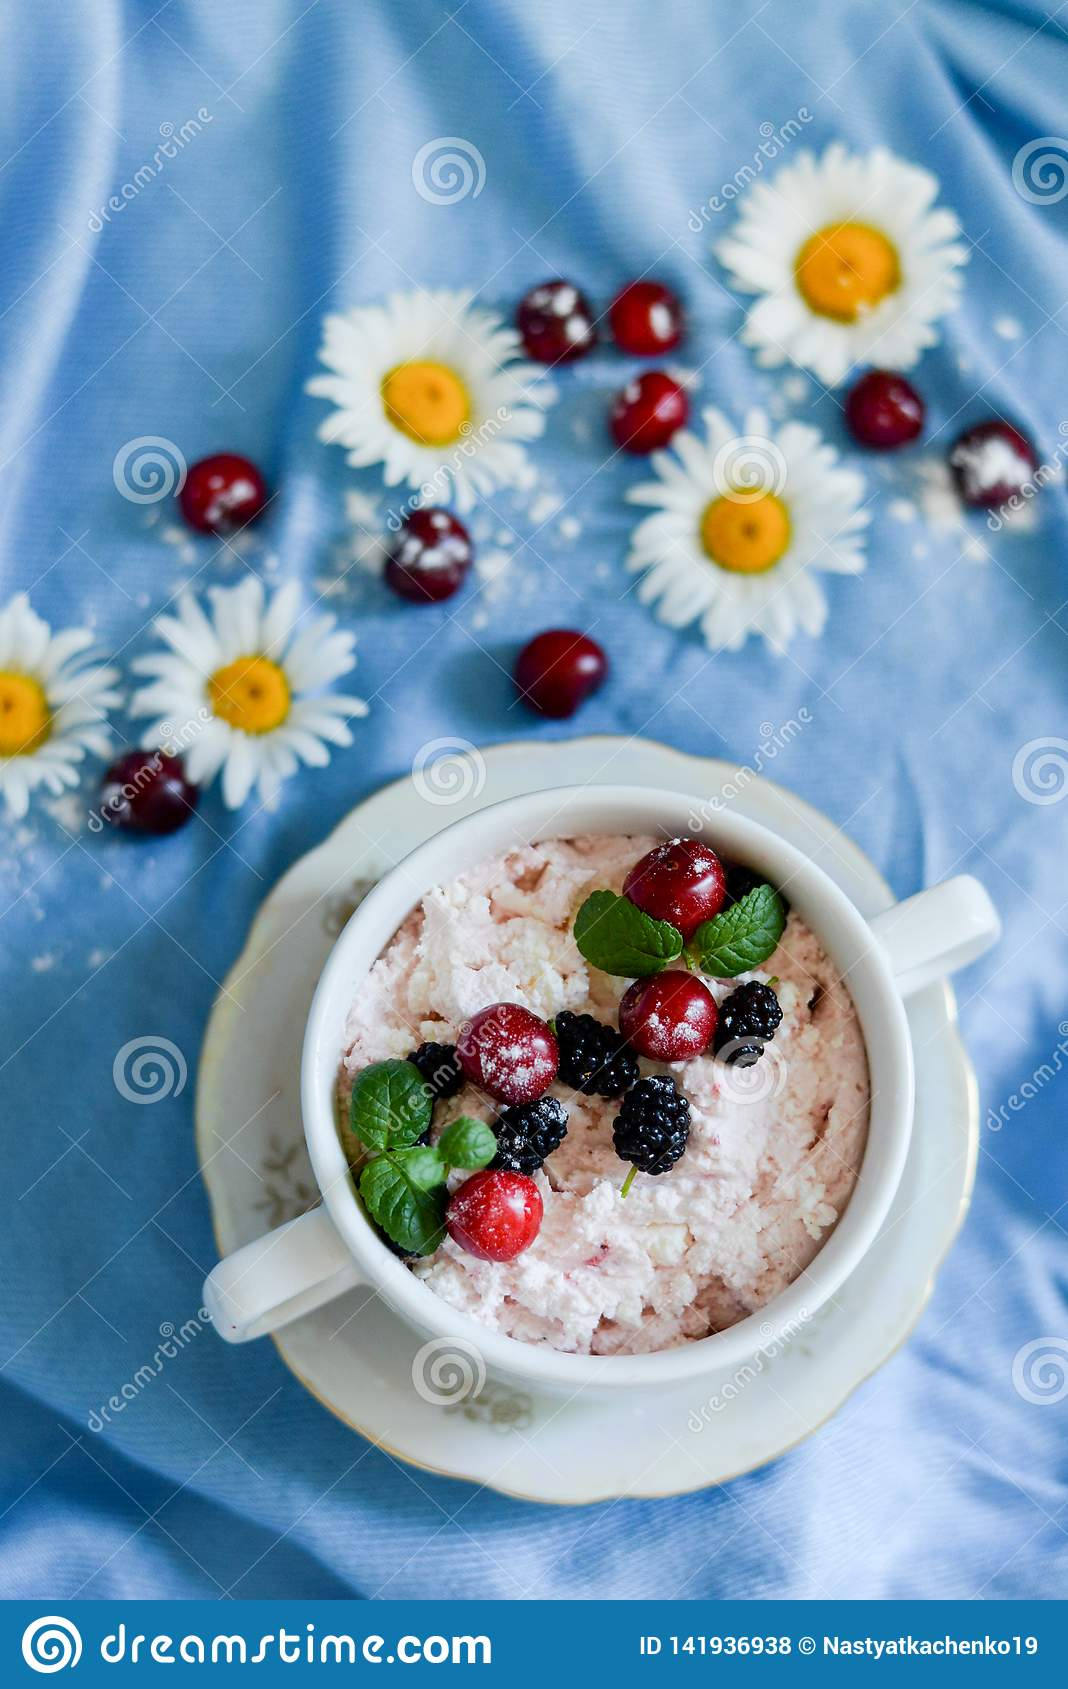 Jars of natural white yogurt with fruit salad with pink dragon fruit, berries and mint on table. Healthy eating. Copy space.blue